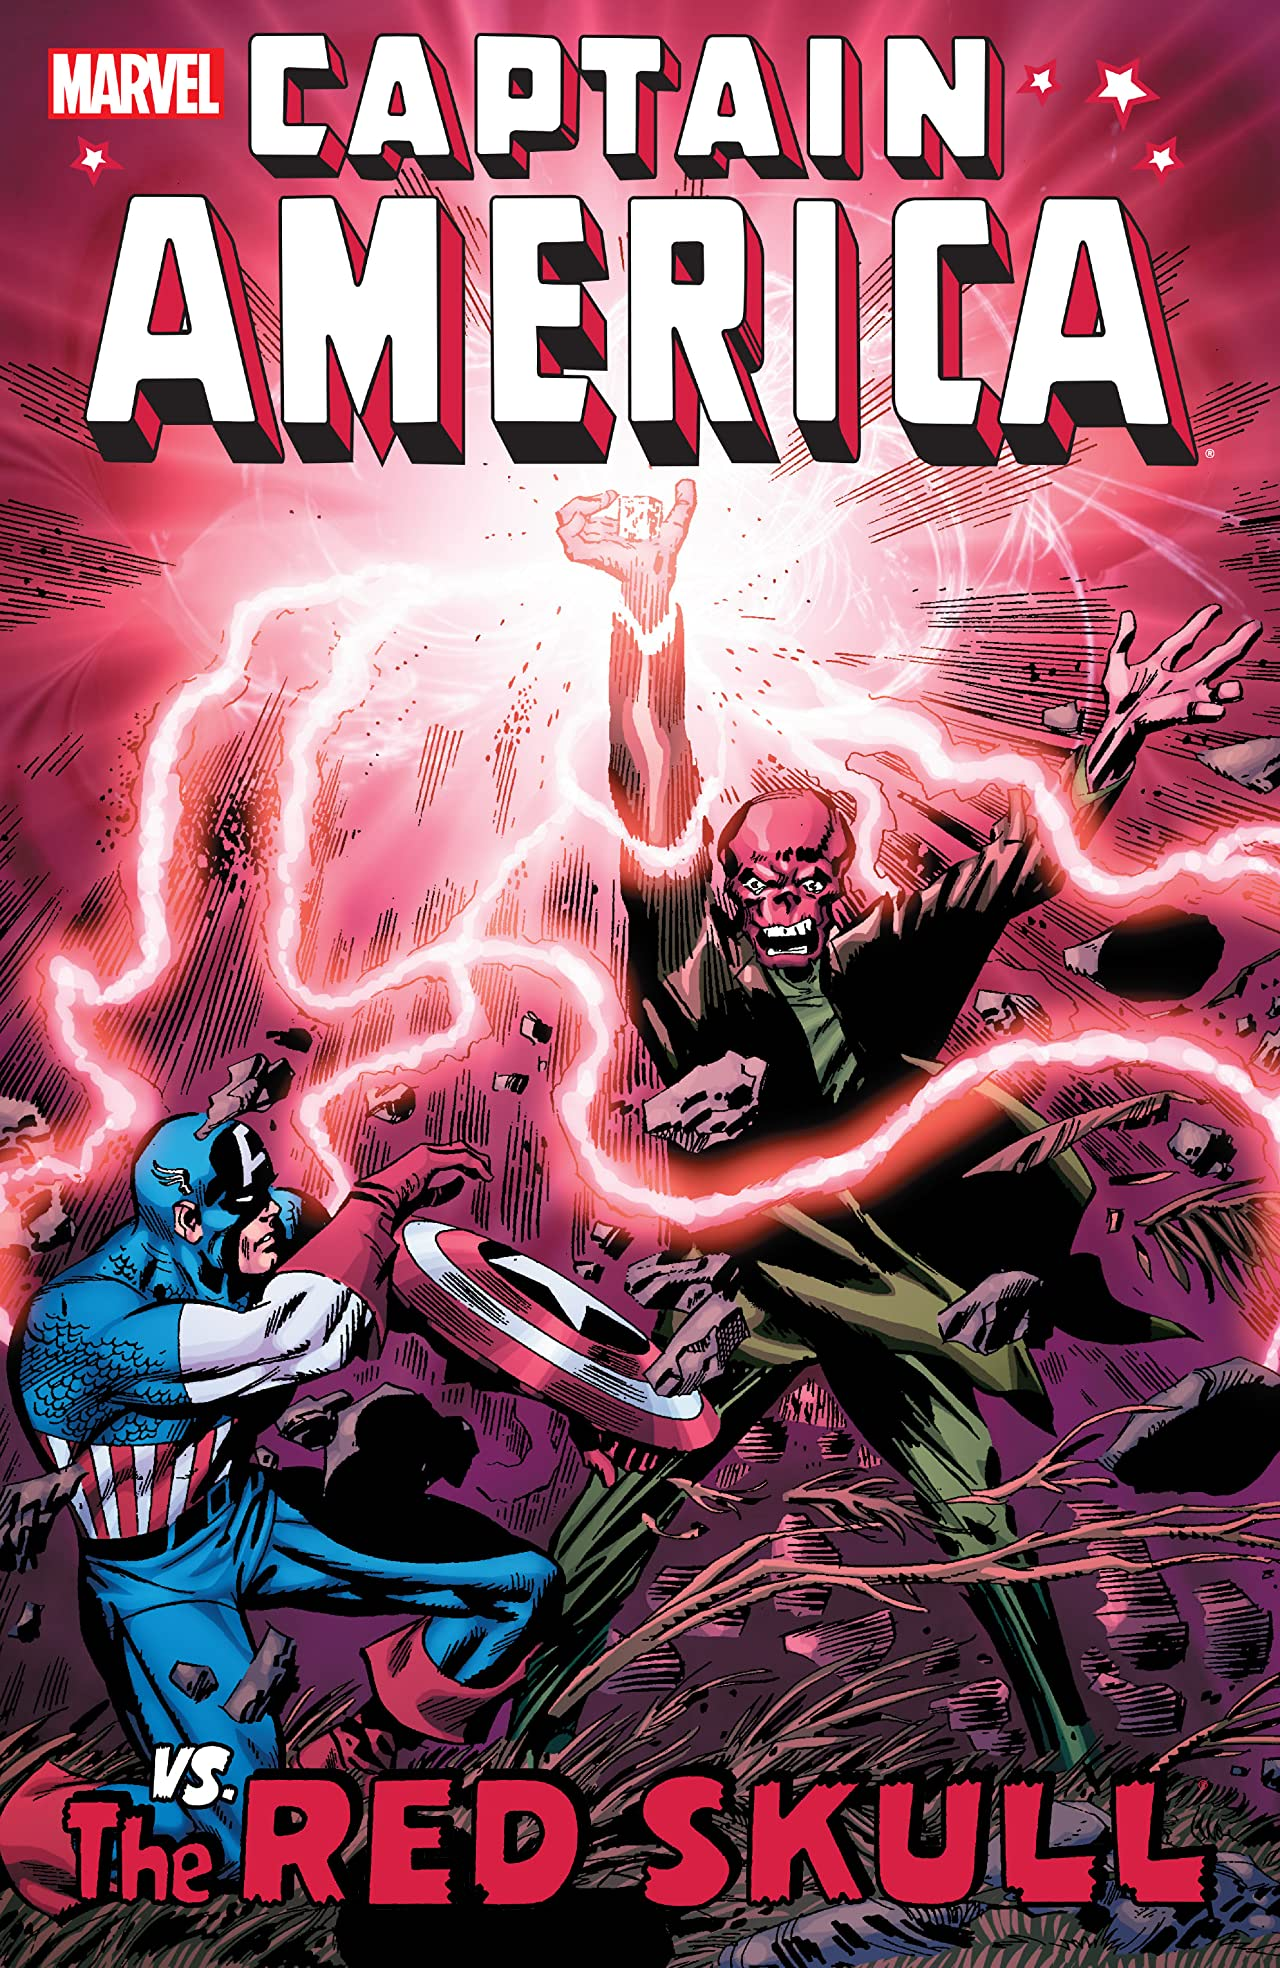 Captain America vs. The Red Skull